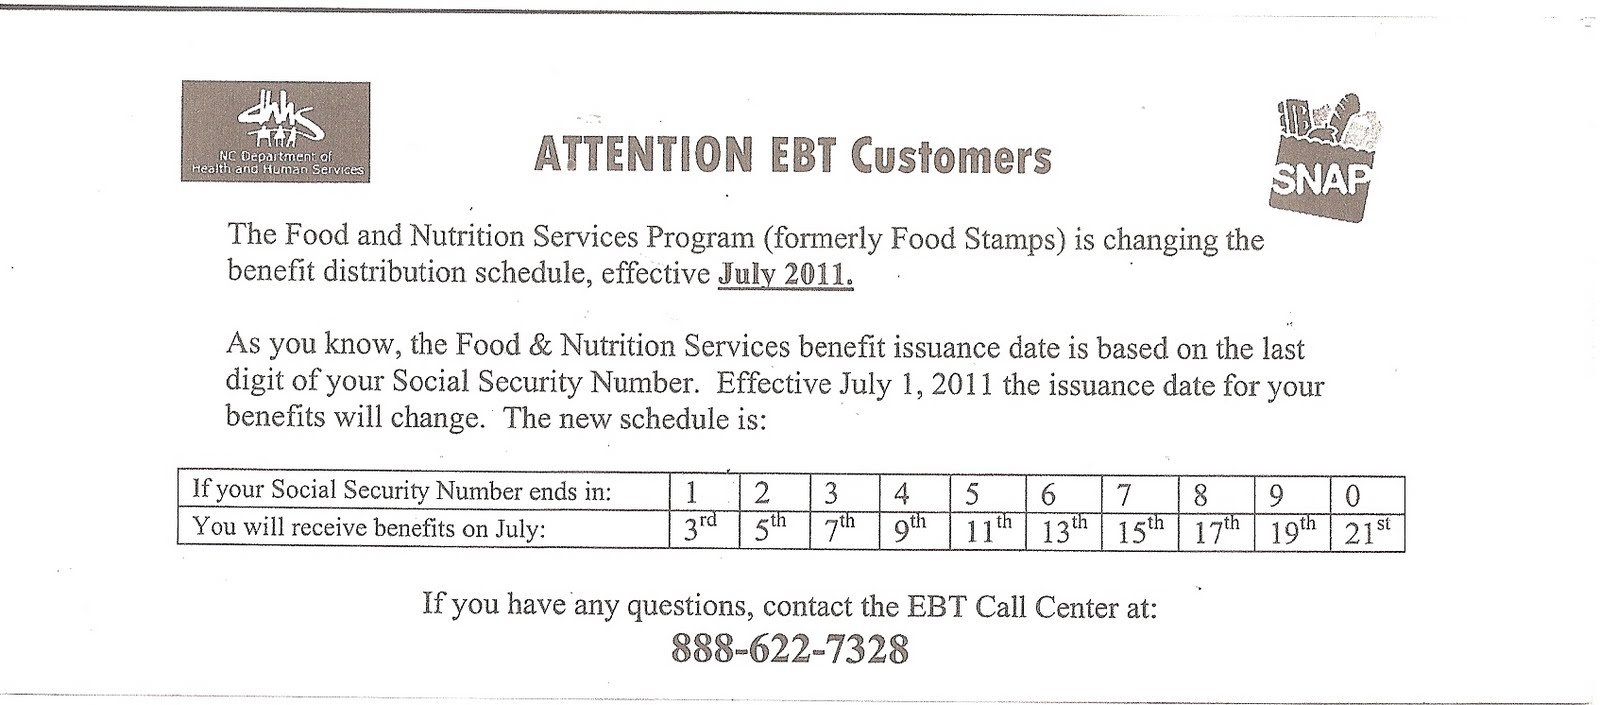 The Last Embassy: The Food and Nutrition Services Program?